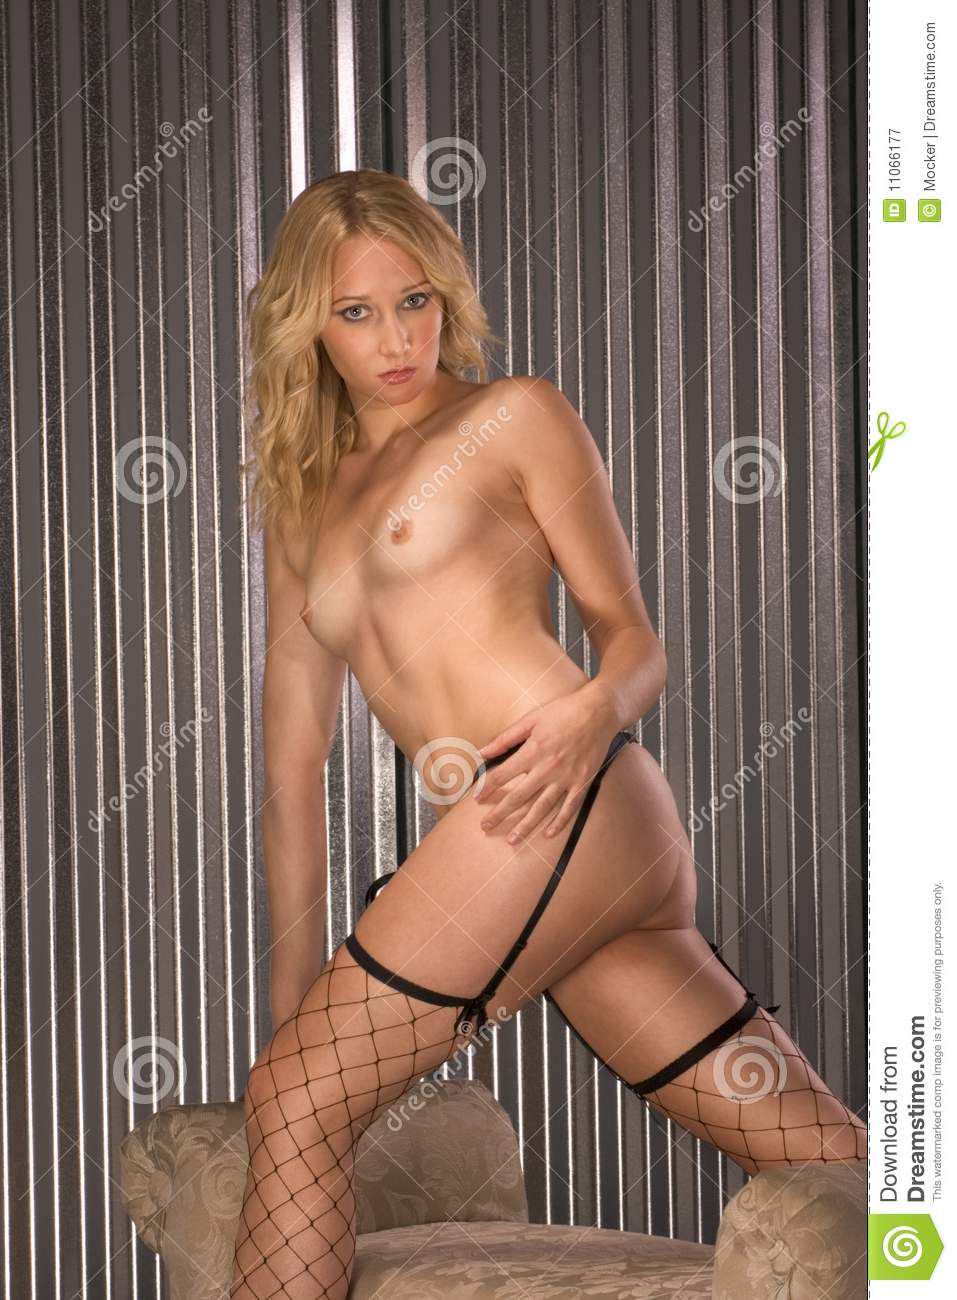 sext stripper photos